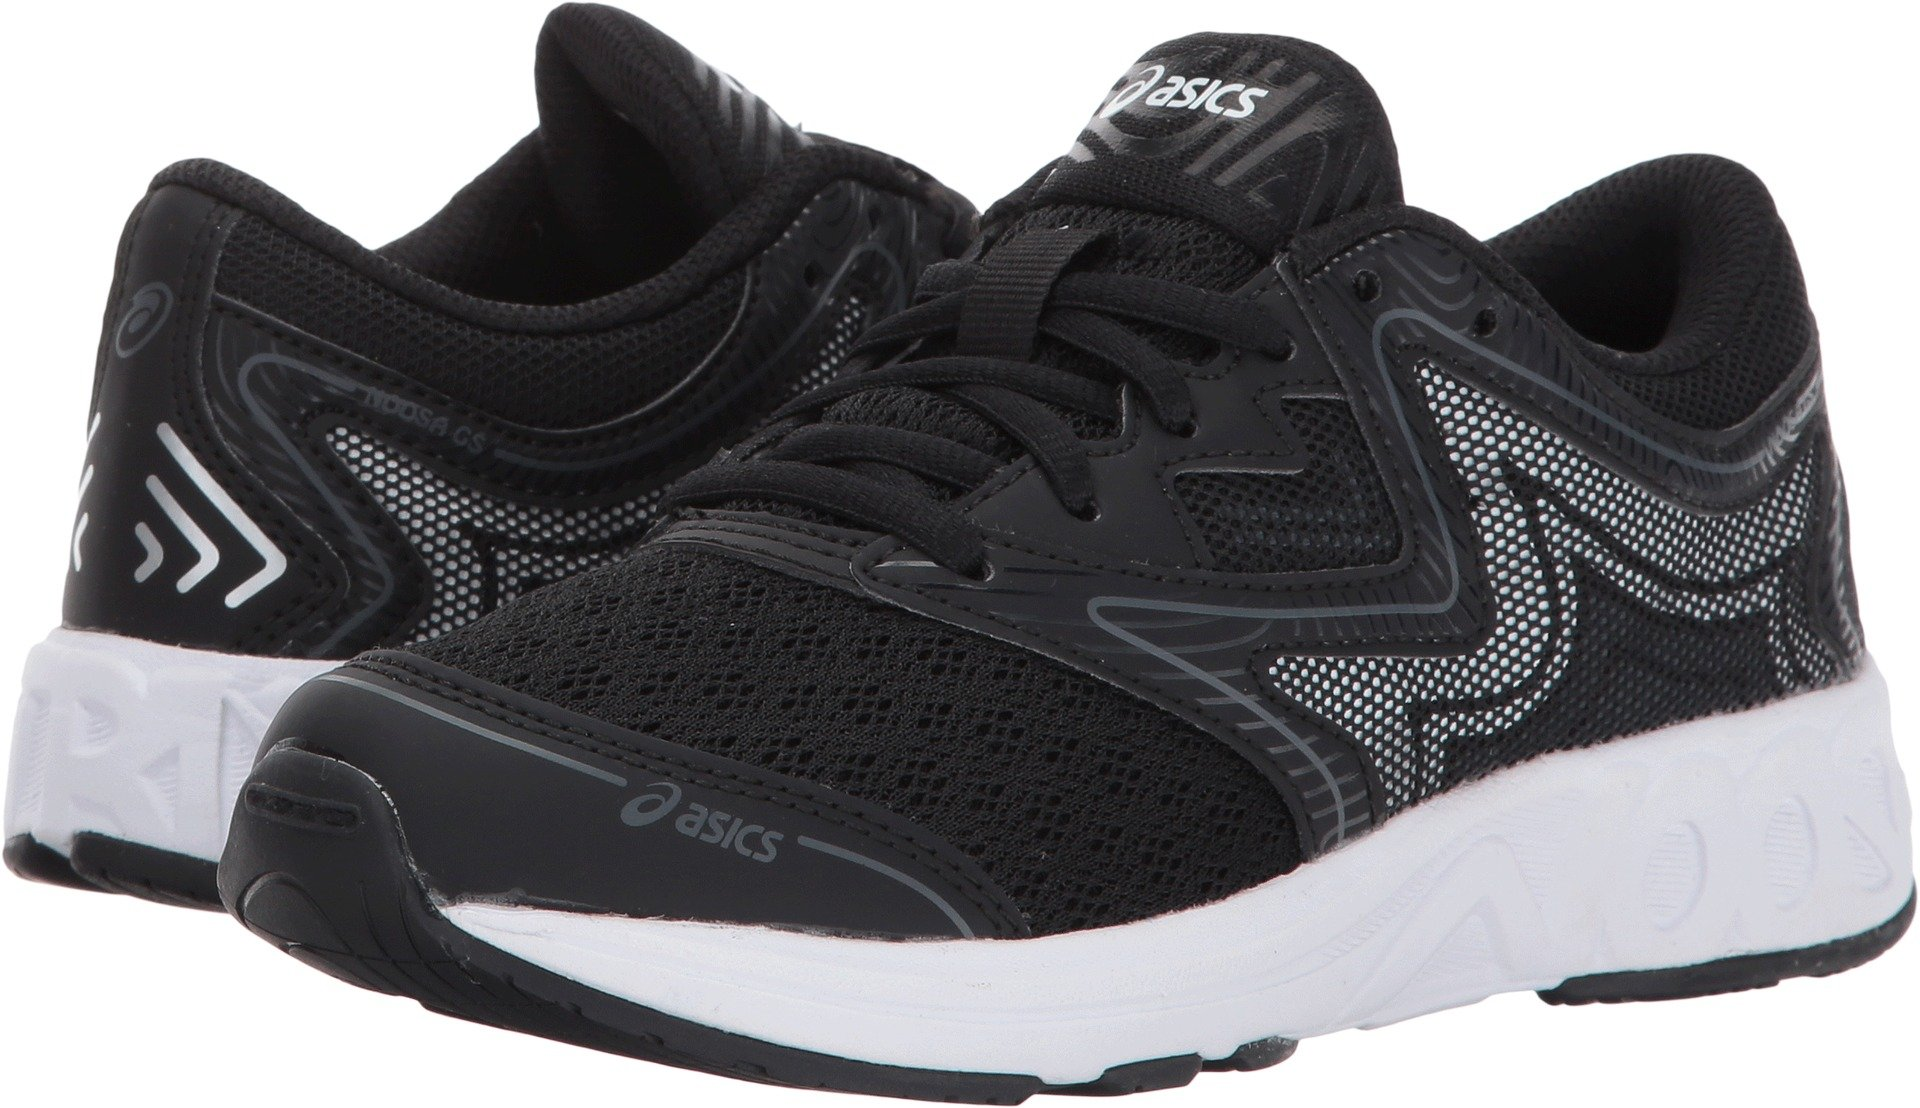 ASICS Unisex-Kids Noosa GS Running Shoe, Black/Carbon/Mid Grey, 4 Medium US Big Kid